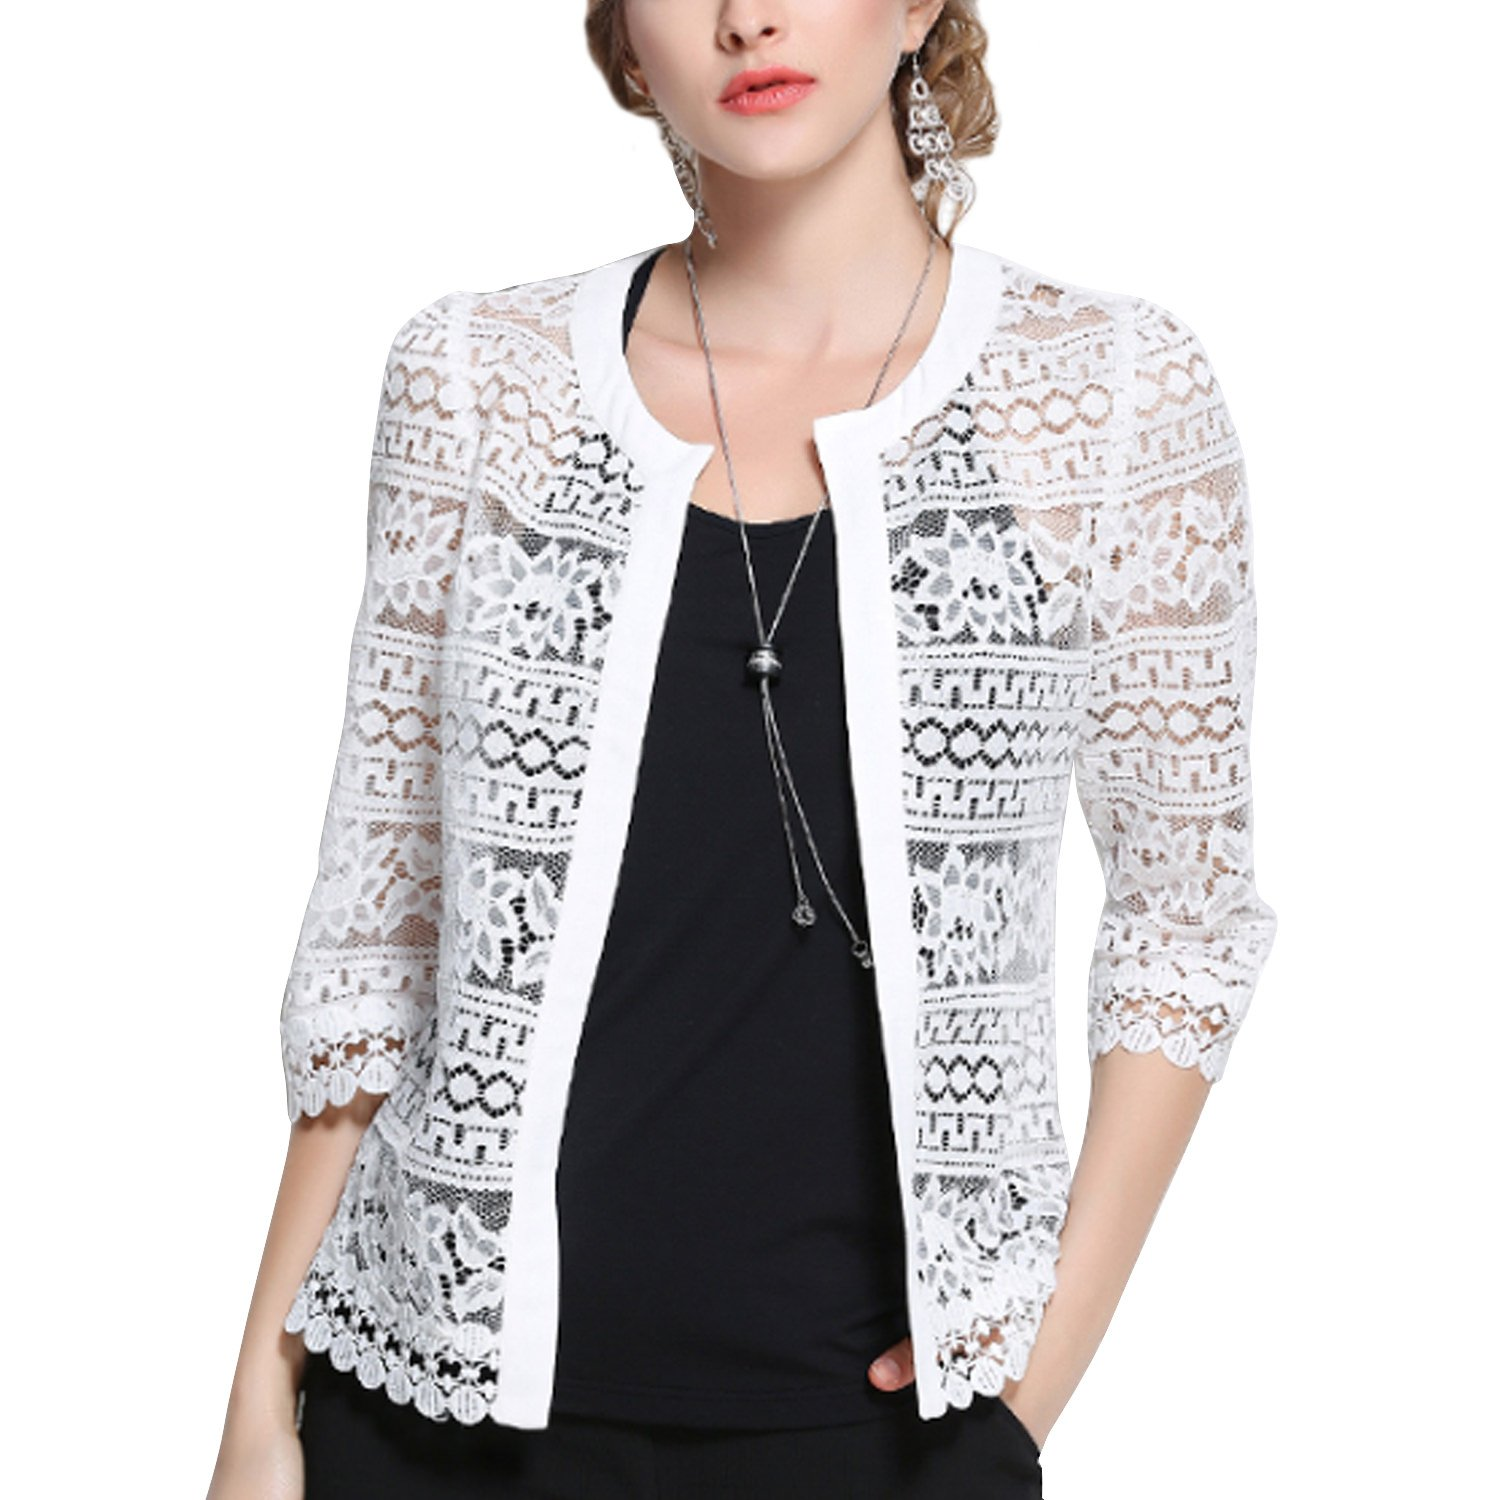 Inshine Women Lace Crochet Sheer Open Front Mesh Cardigan Coat PW2016196